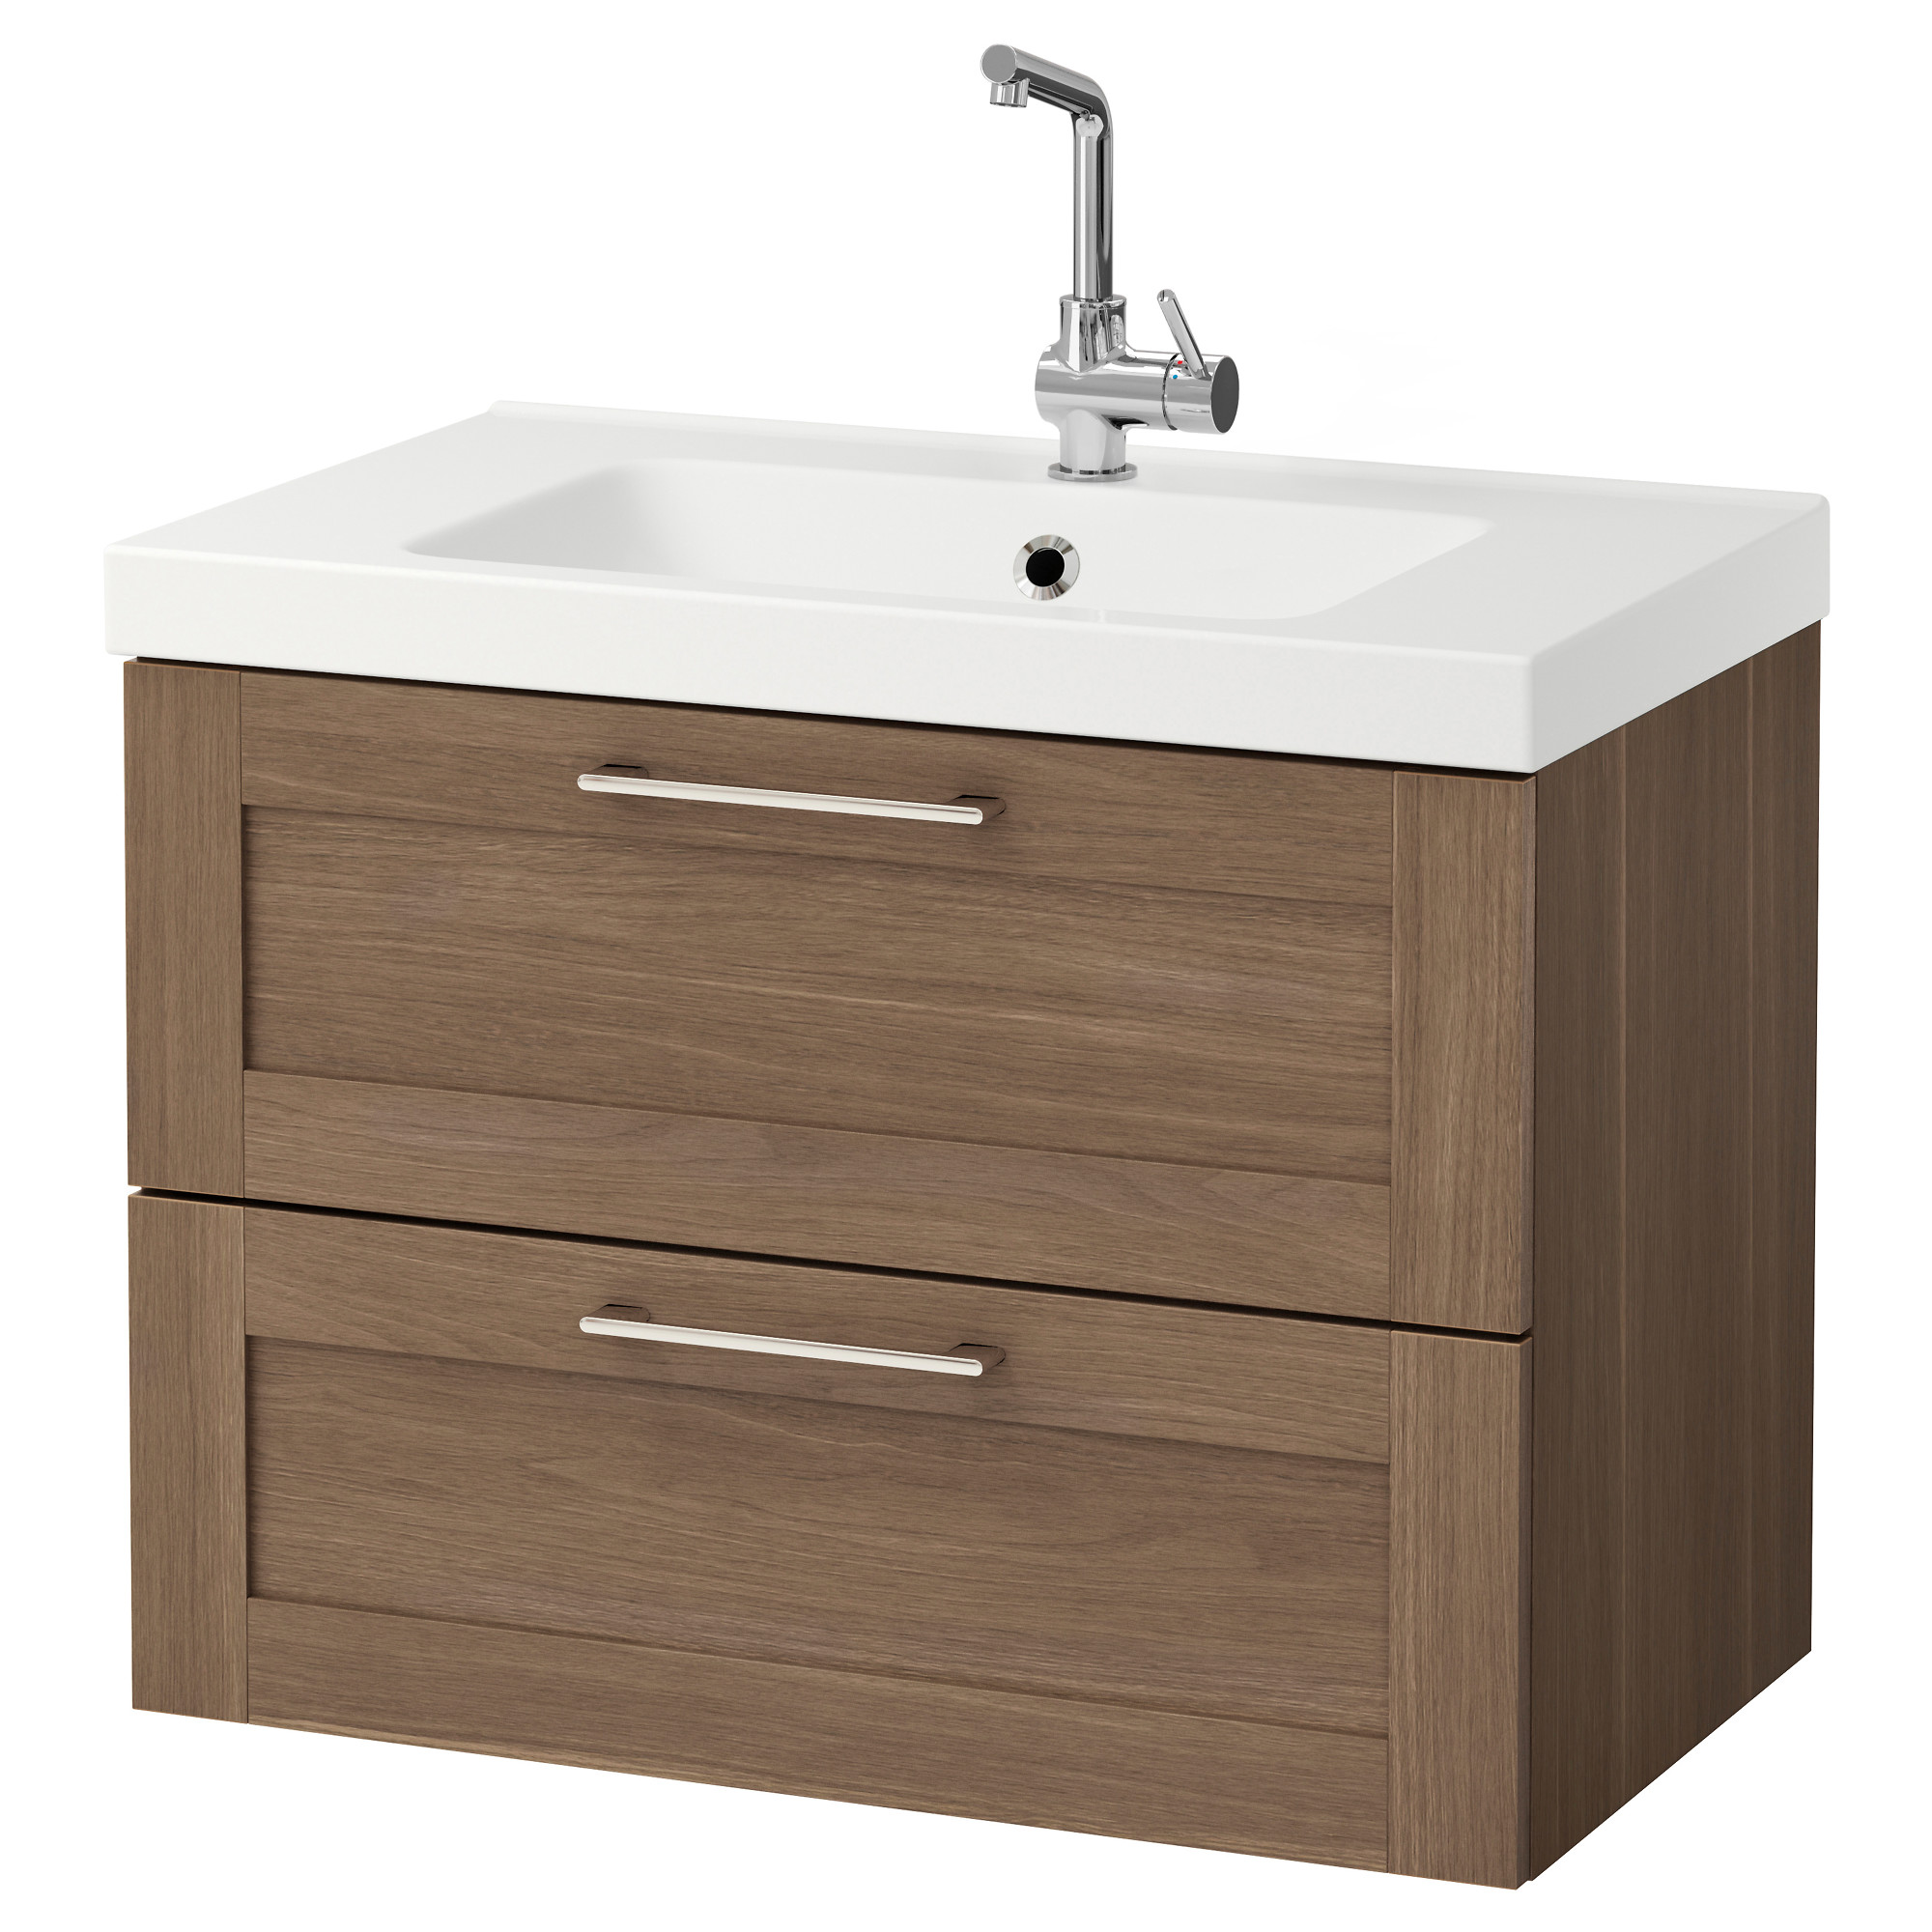 Morgon Odensvik Sink Cabinet With 2 Drawers High Gloss White Ikea